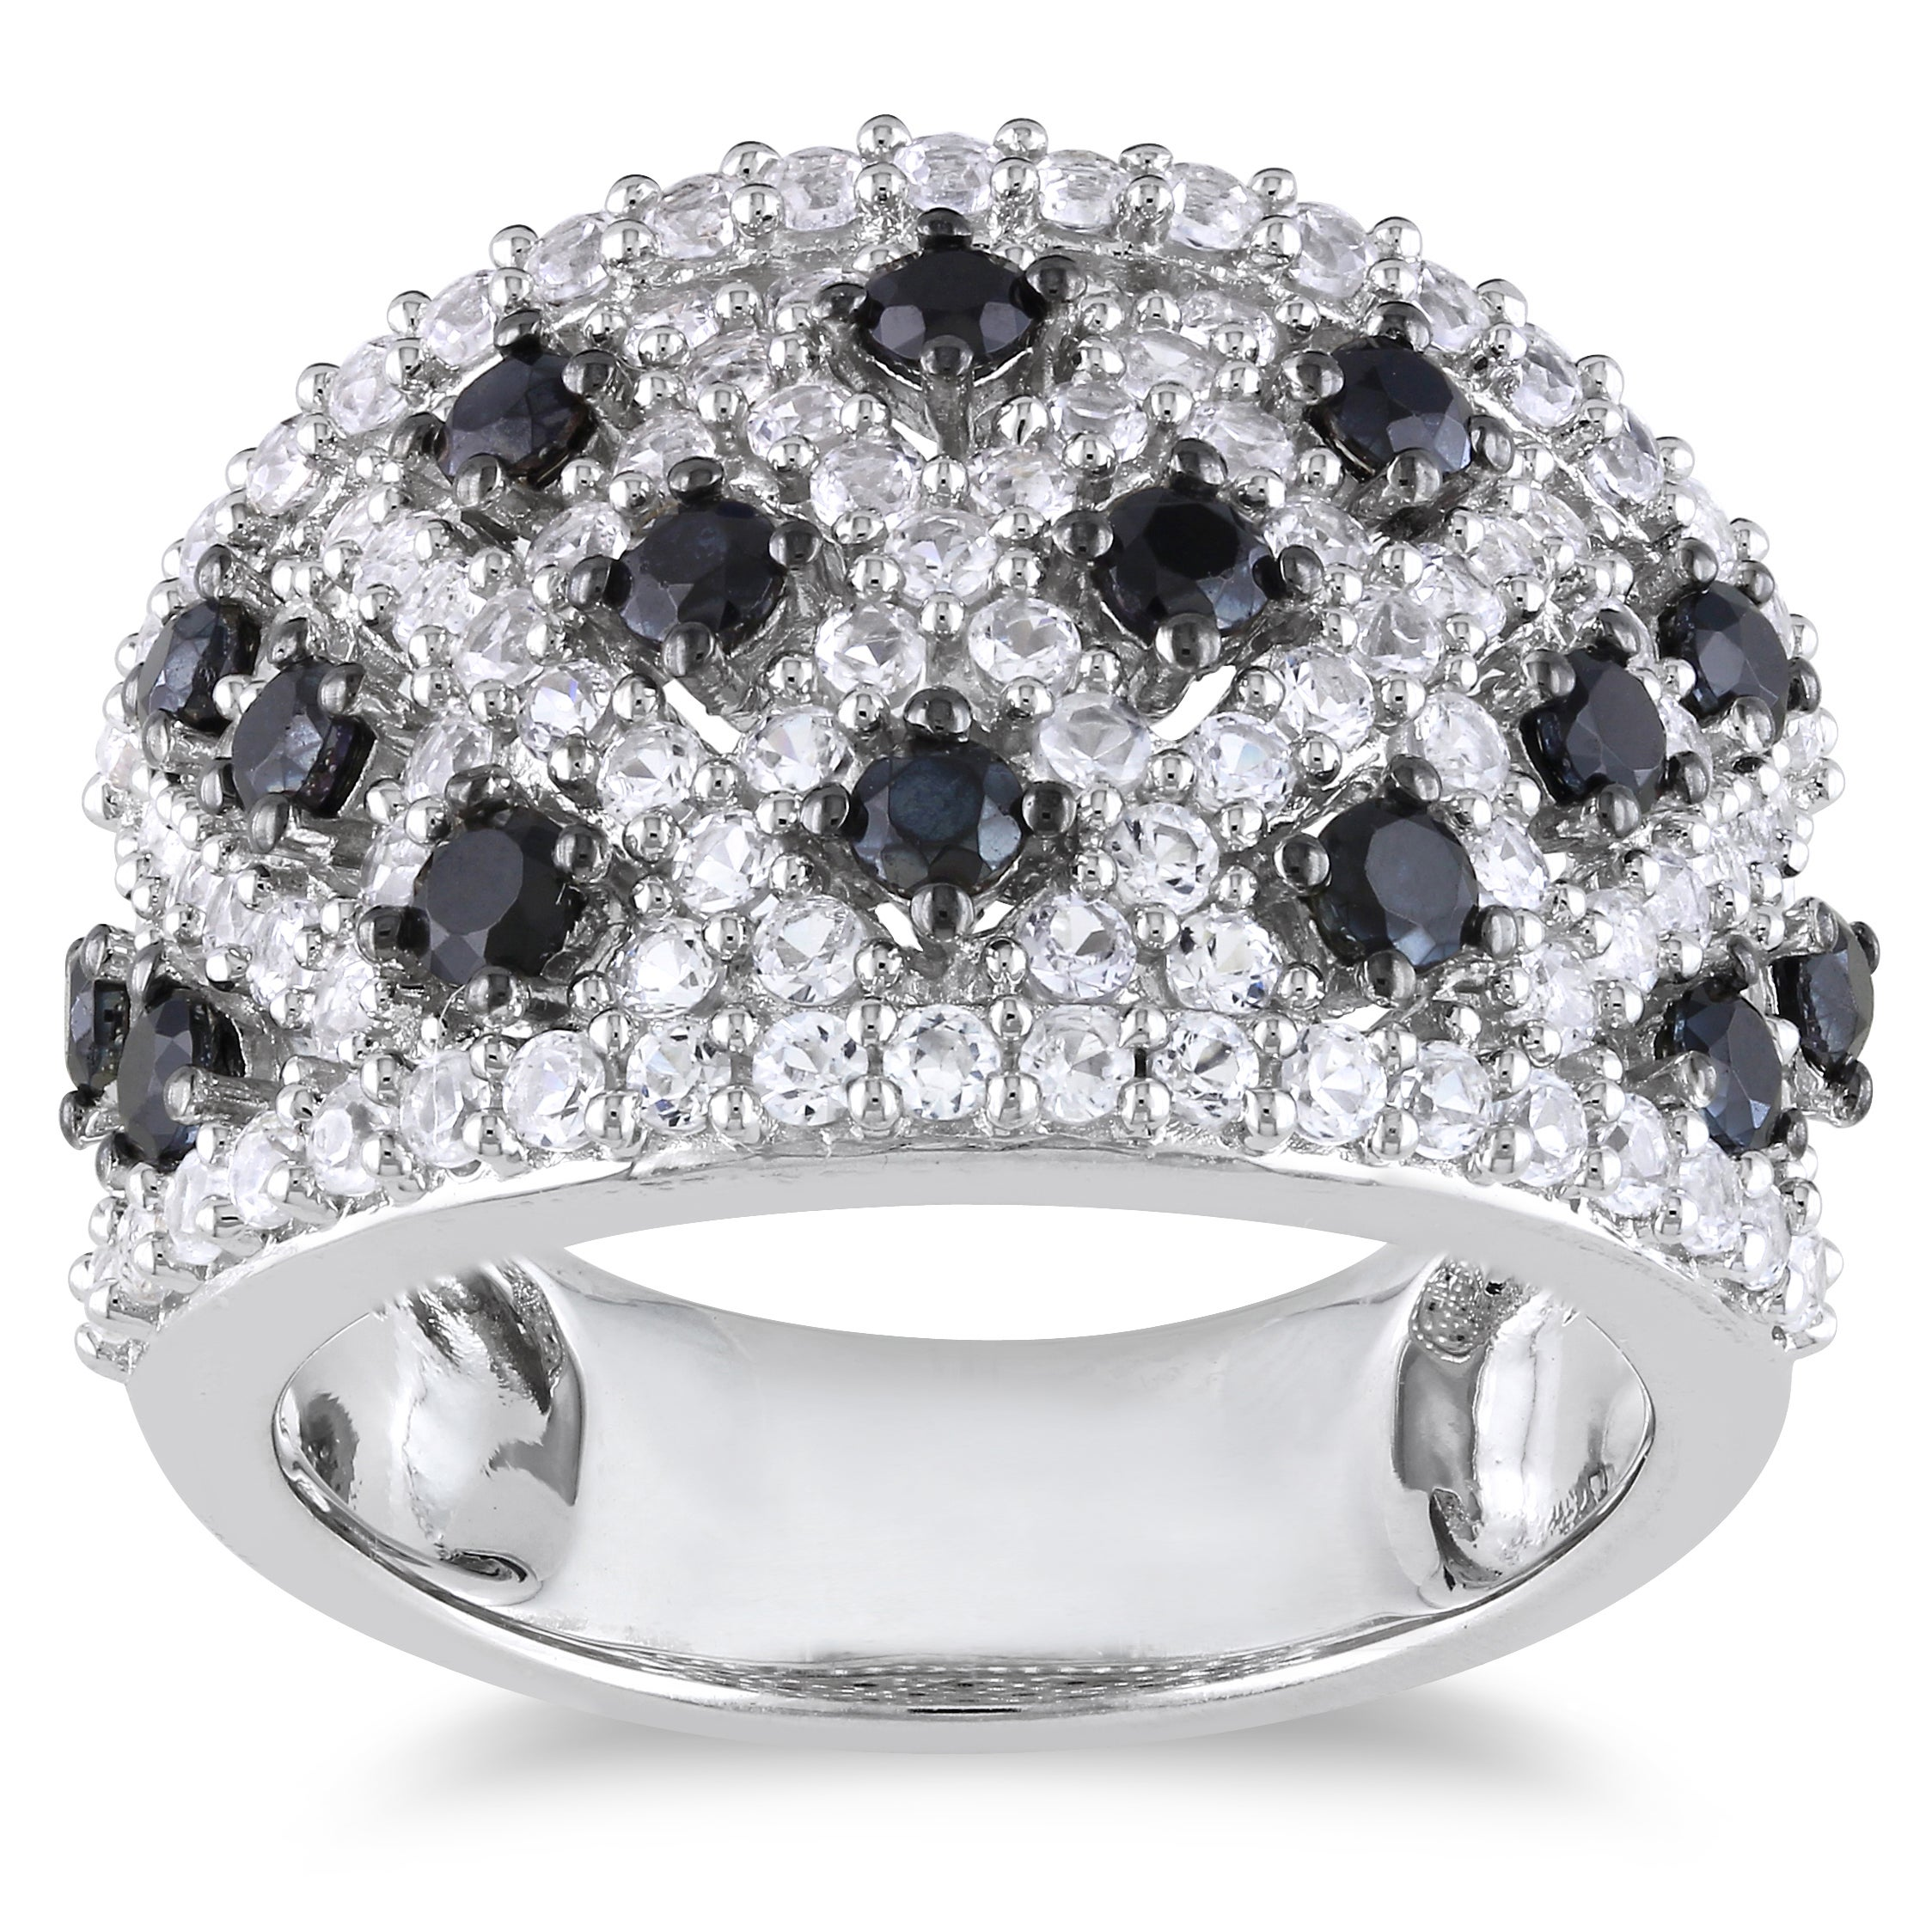 Miadora Sterling Silver Black Spinel and White Sapphire Ring